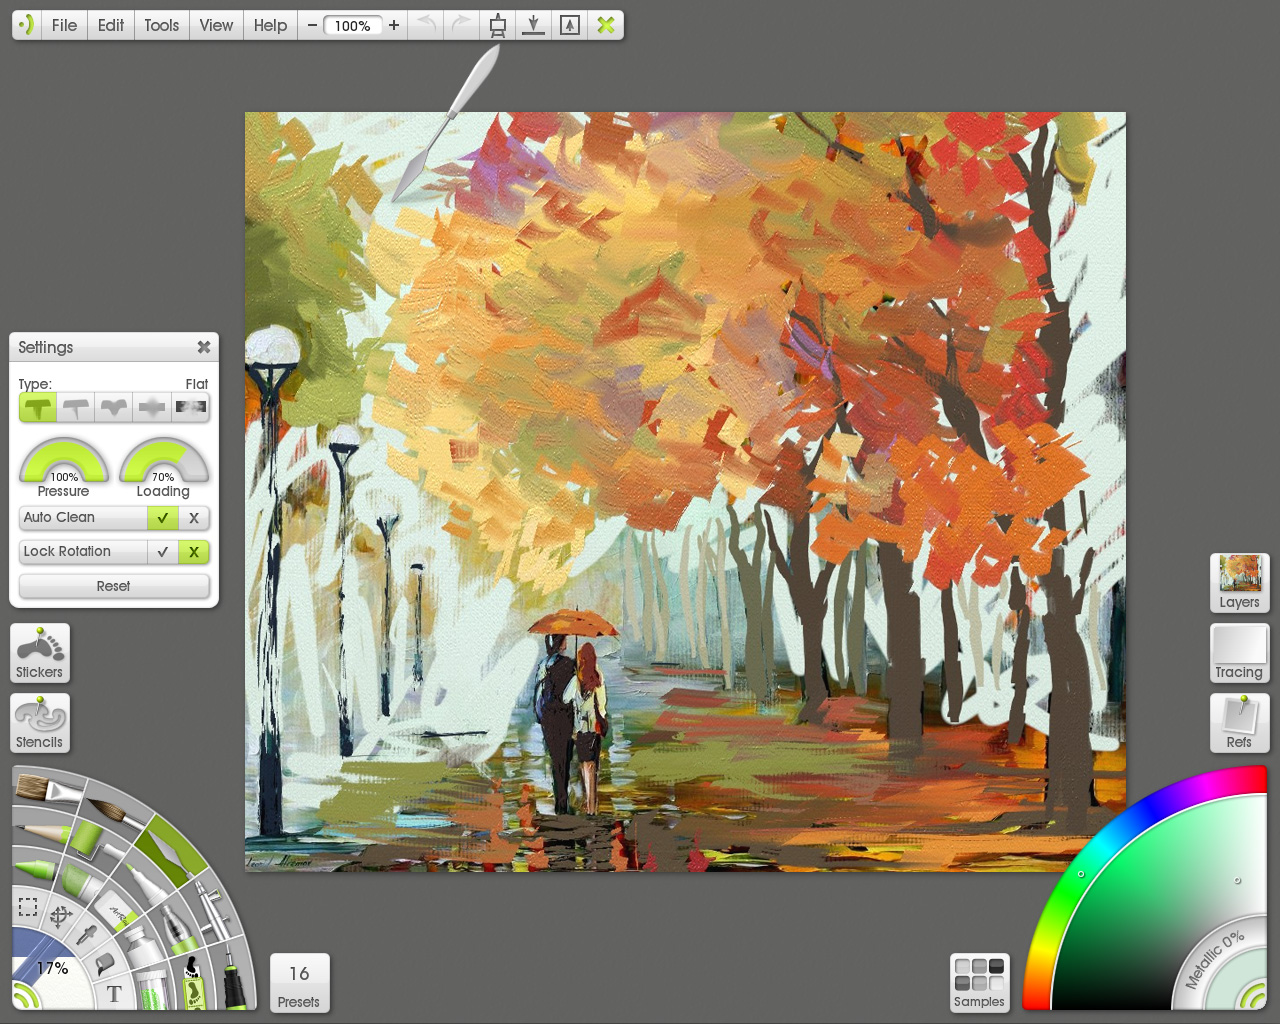 ArtRage Studio Pro 3.5 Knife Loaded Screen Shot